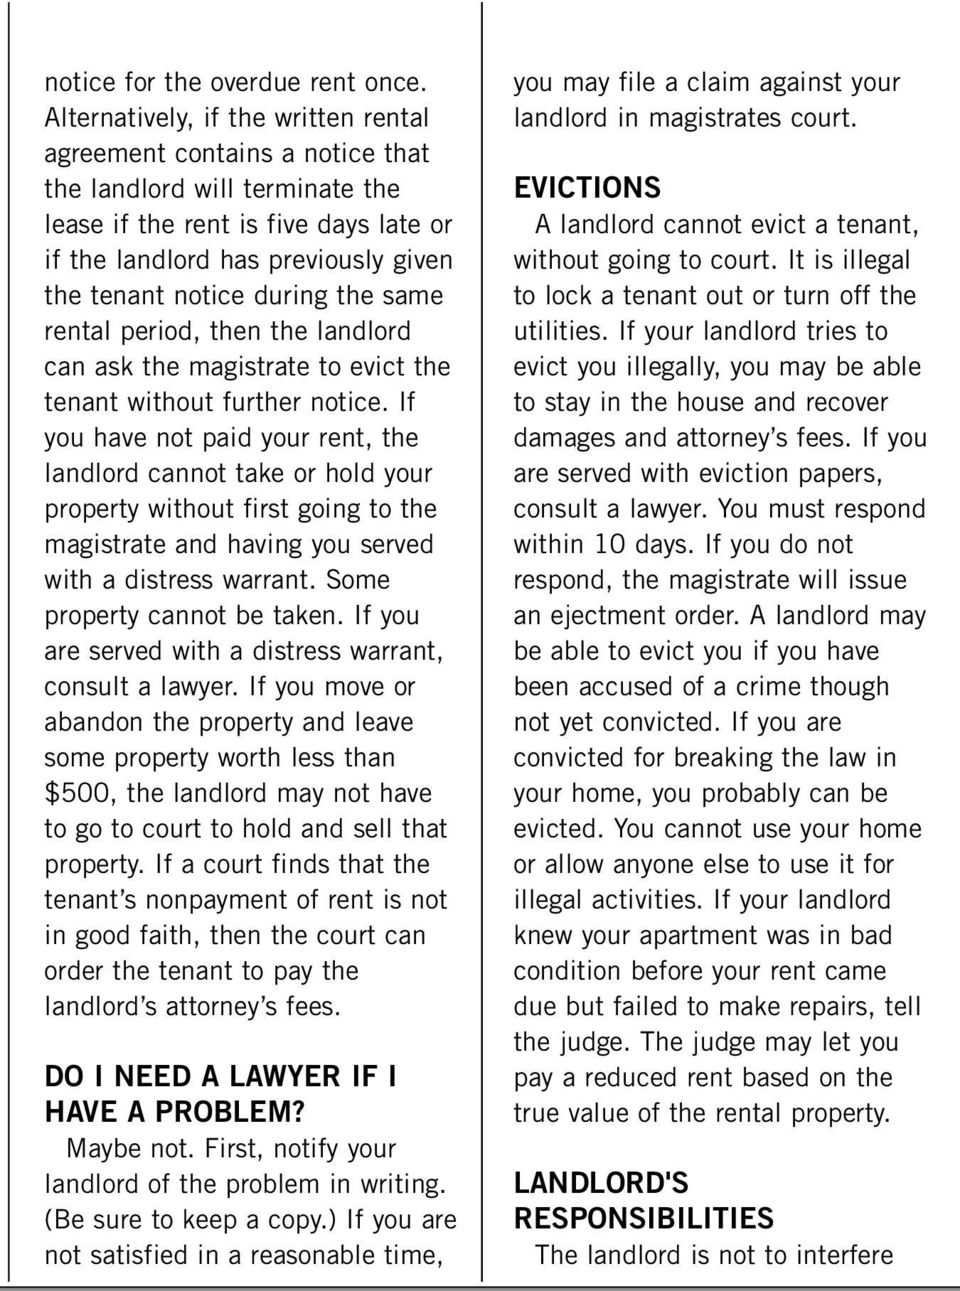 during the same rental period, then the landlord can ask the magistrate to evict the tenant without further notice.